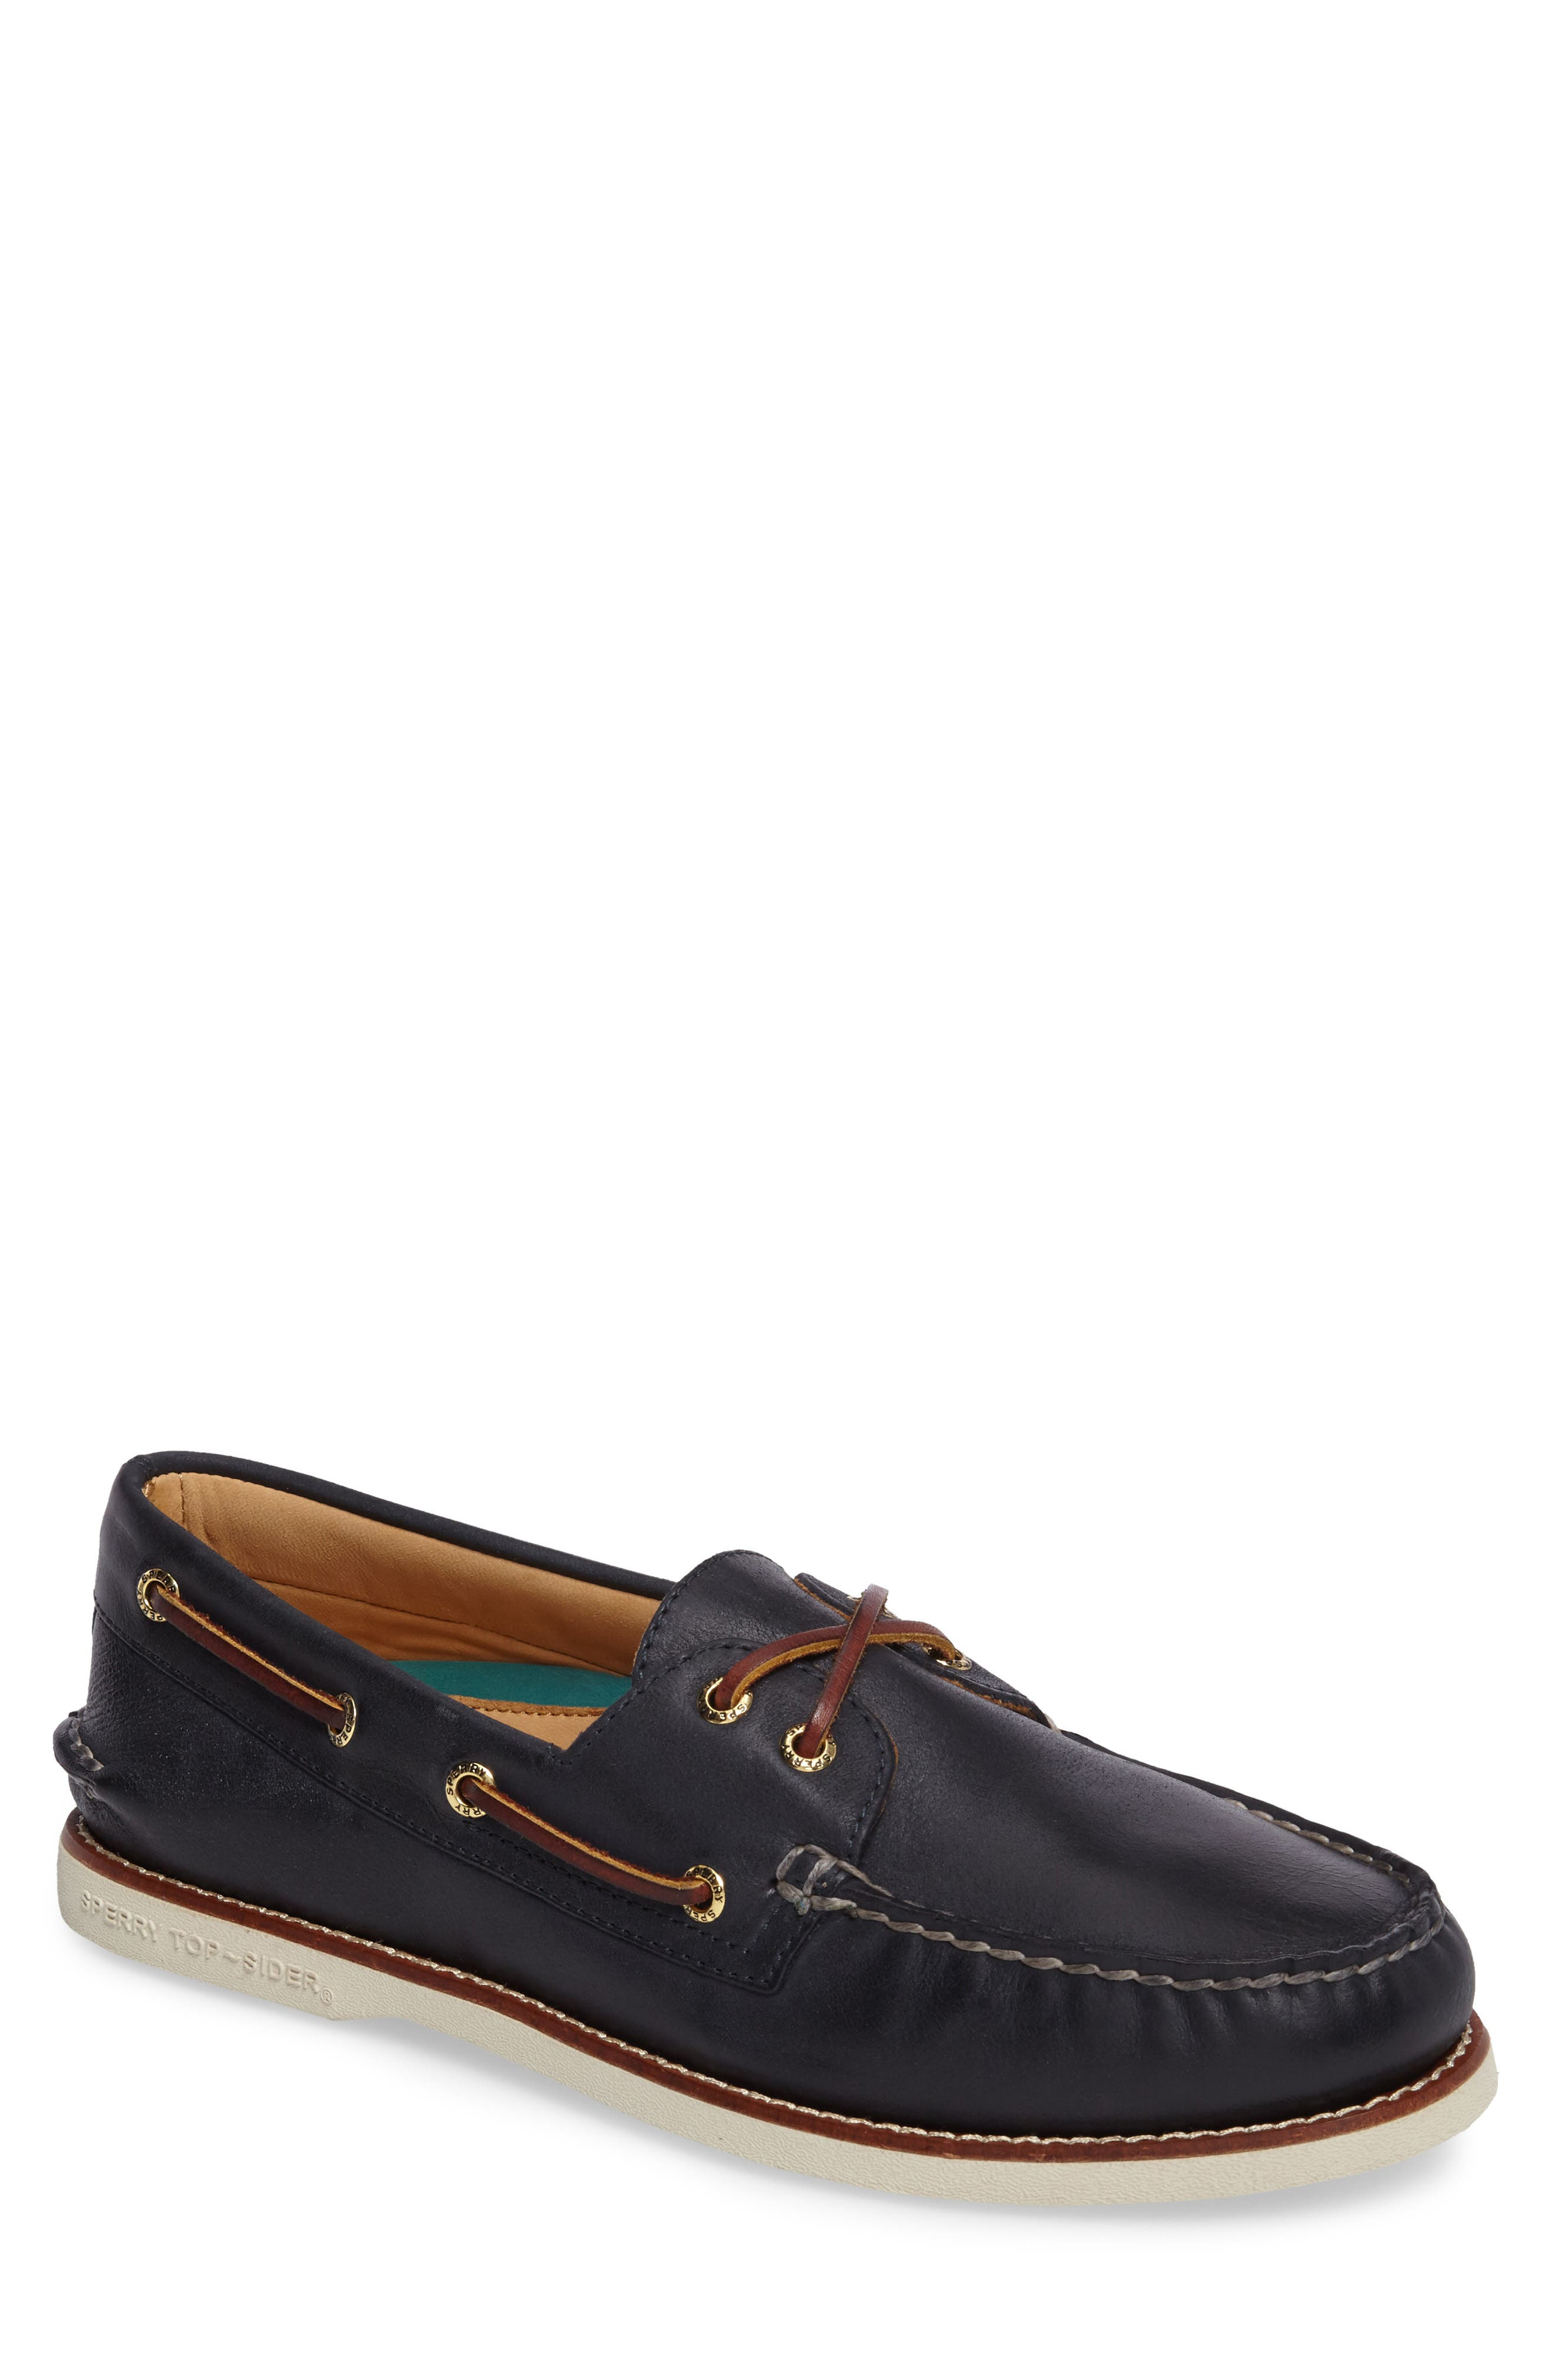 'Gold Cup - Authentic Original' Boat Shoe,                         Main,                         color, NAVY LEATHER